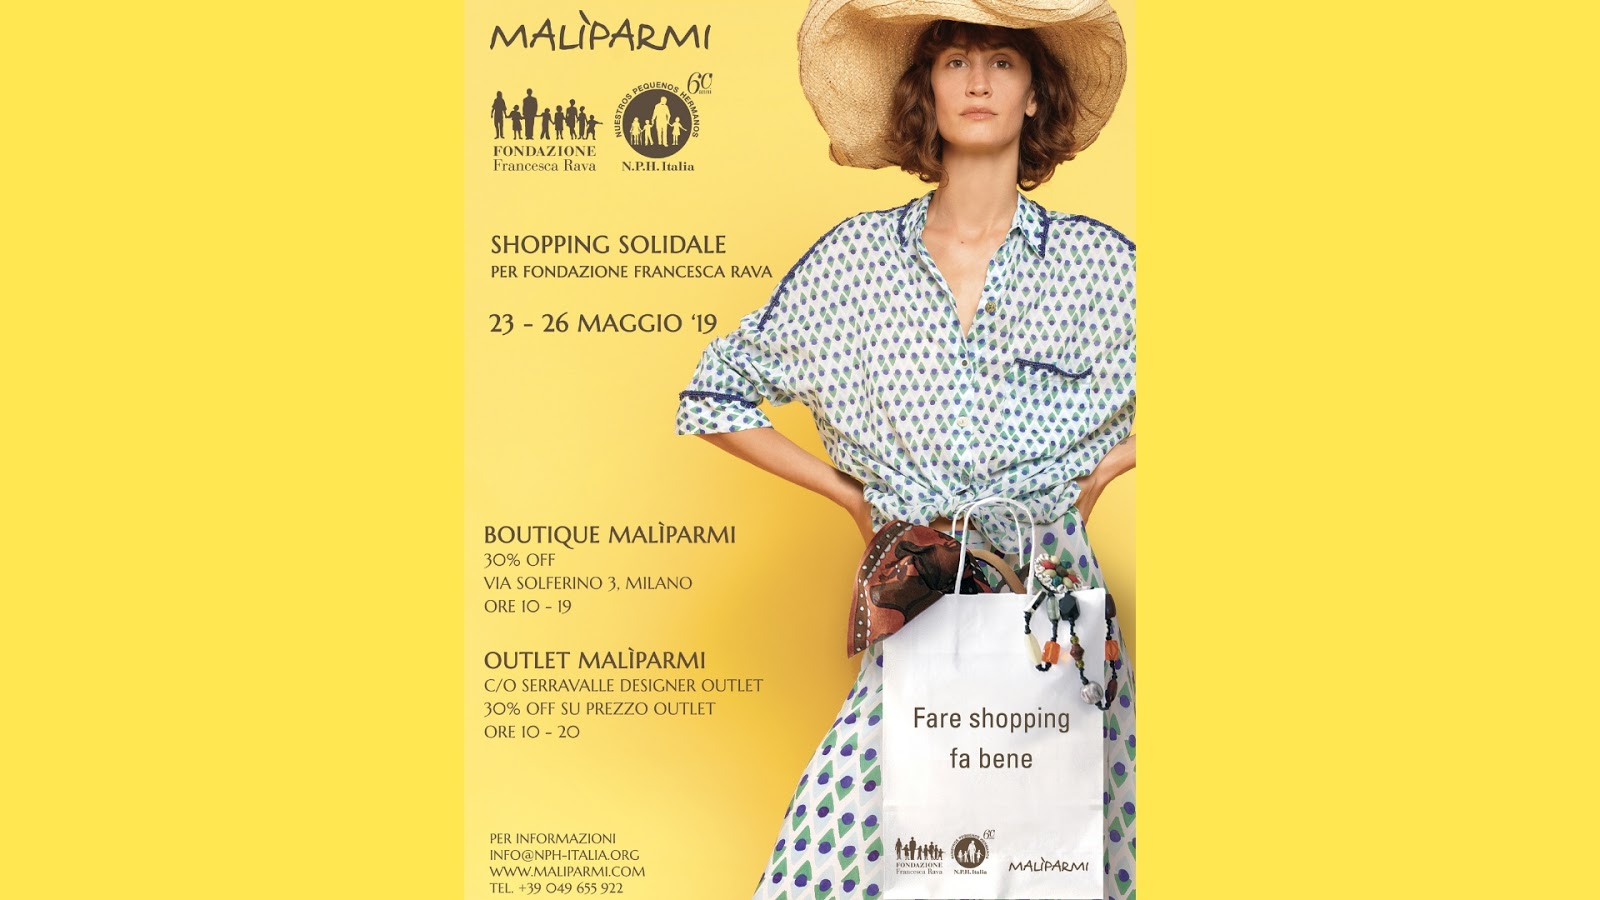 #FareShoppingFaBene: la vendita di Malìparmi per la Fondazione Francesca Rava, Valentina Rago, fashion need, fashion blog milano